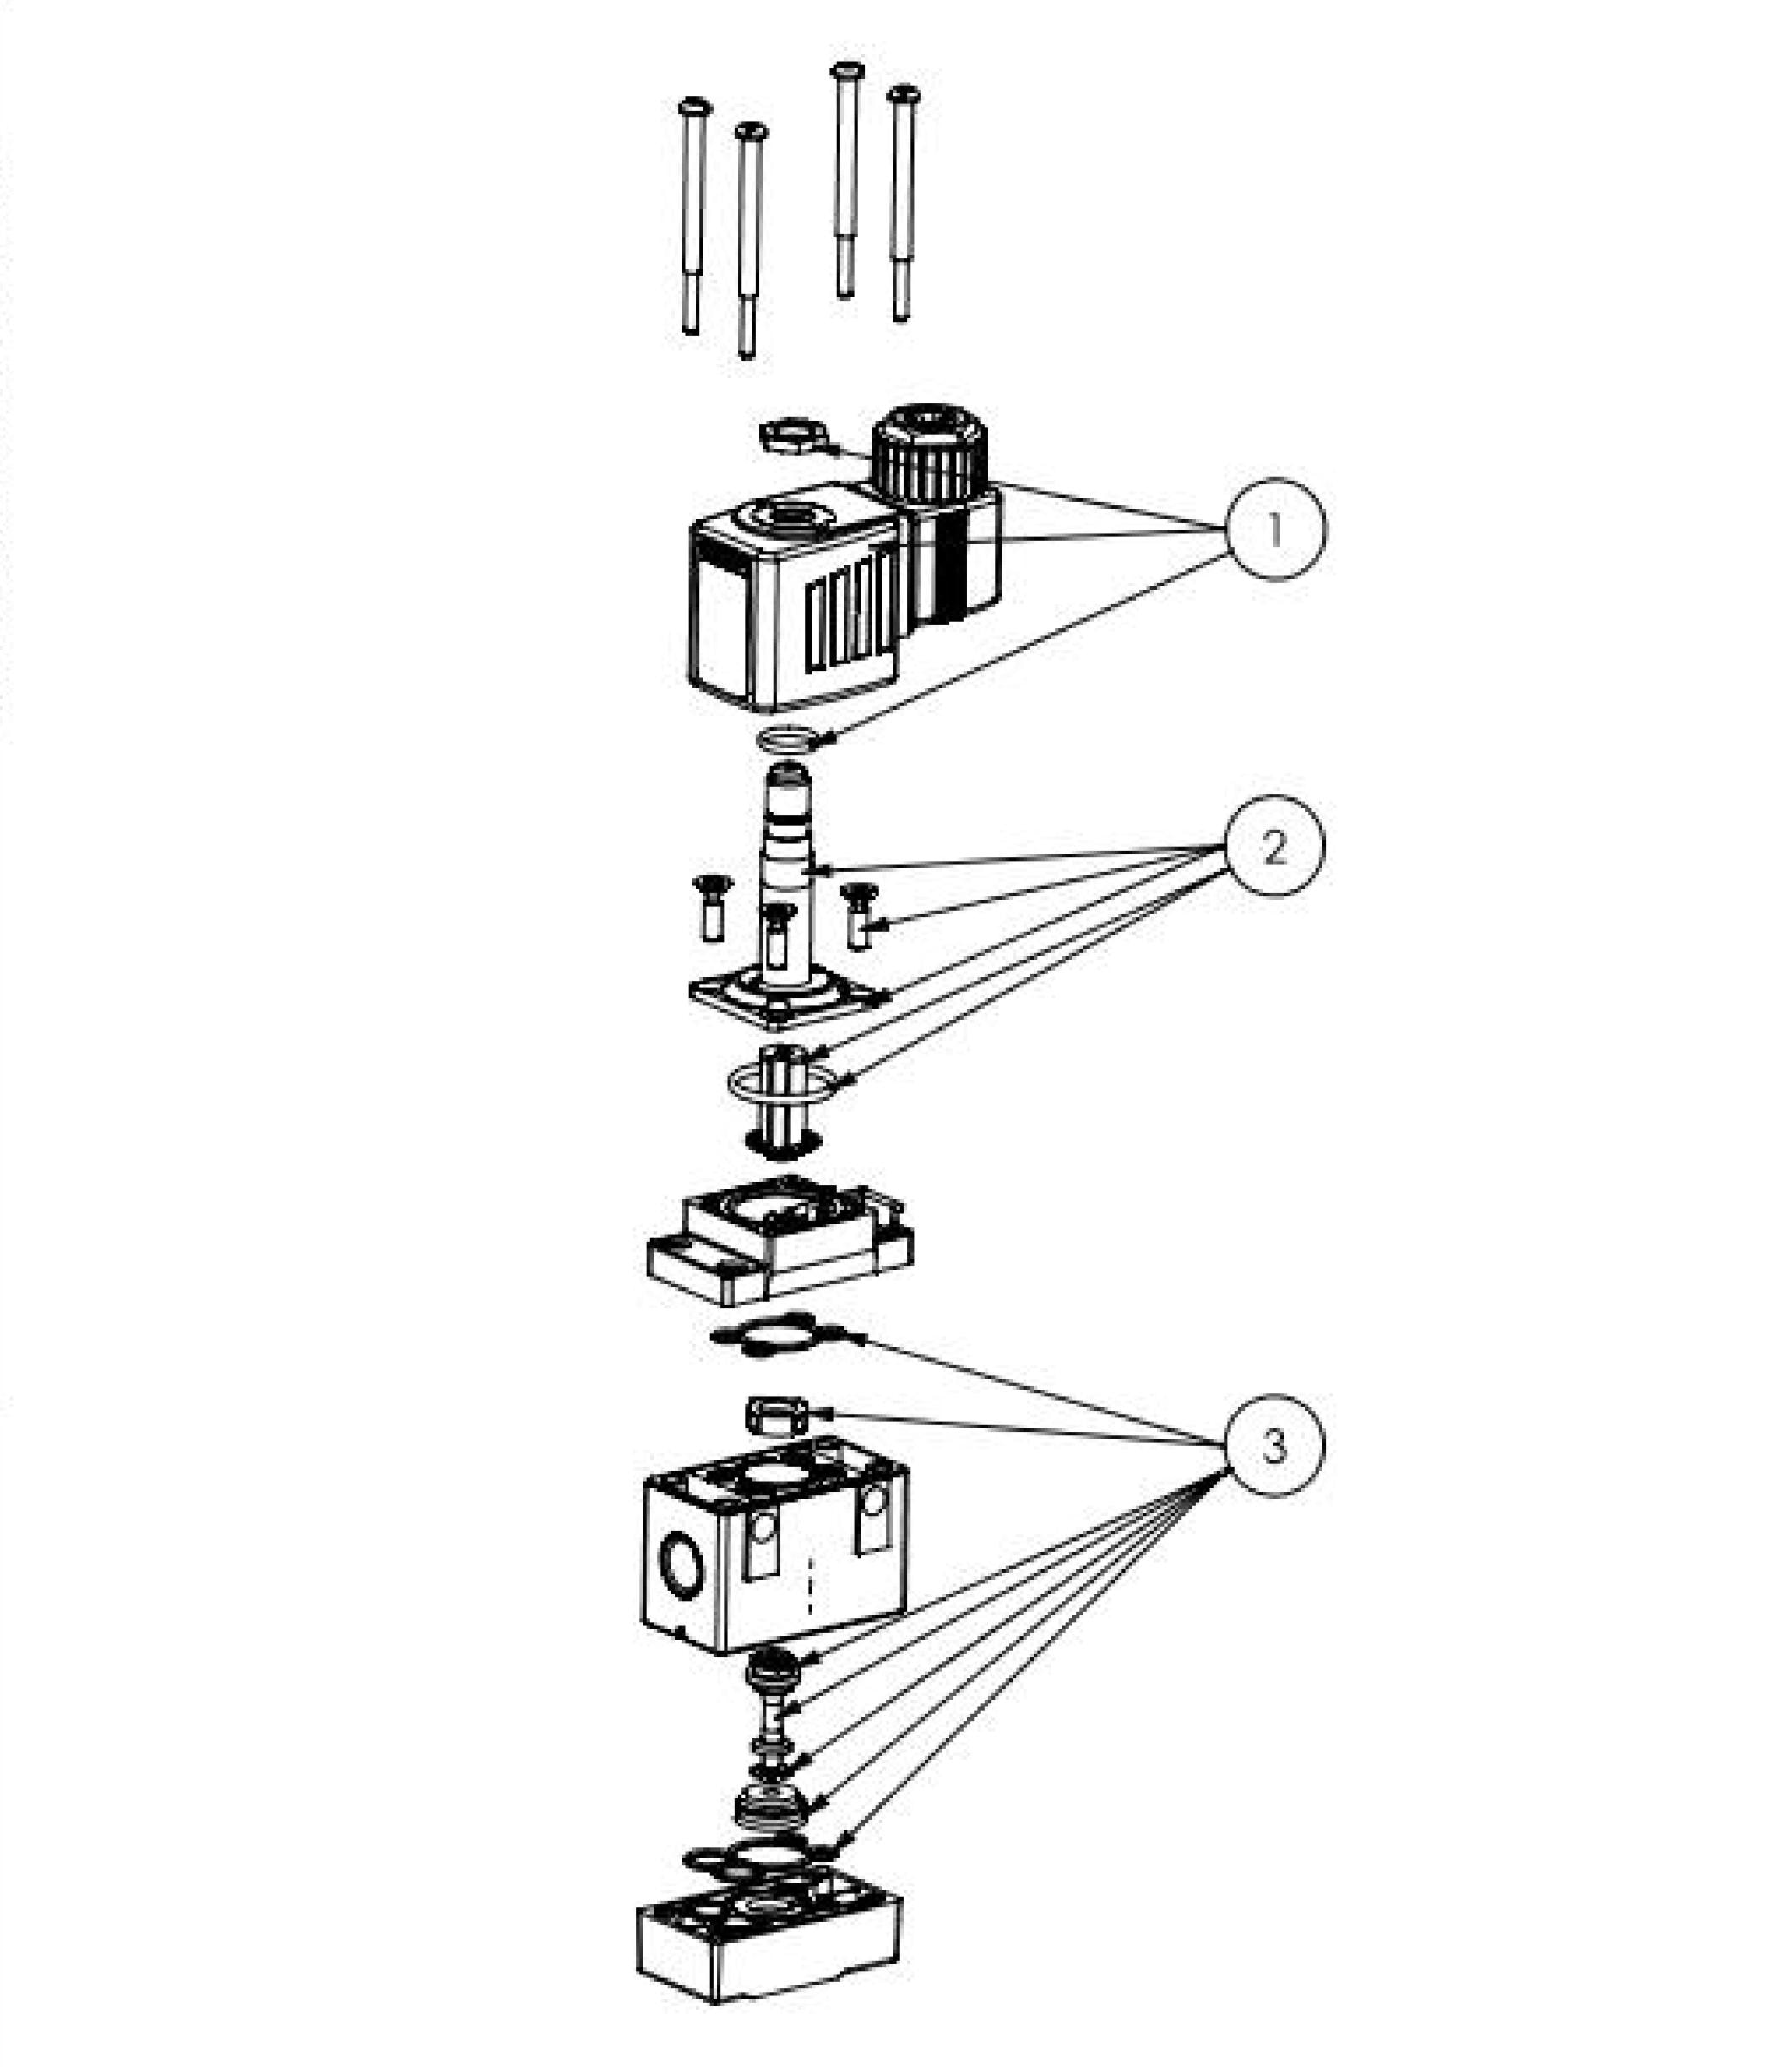 pneumatic 3 way valve diagram